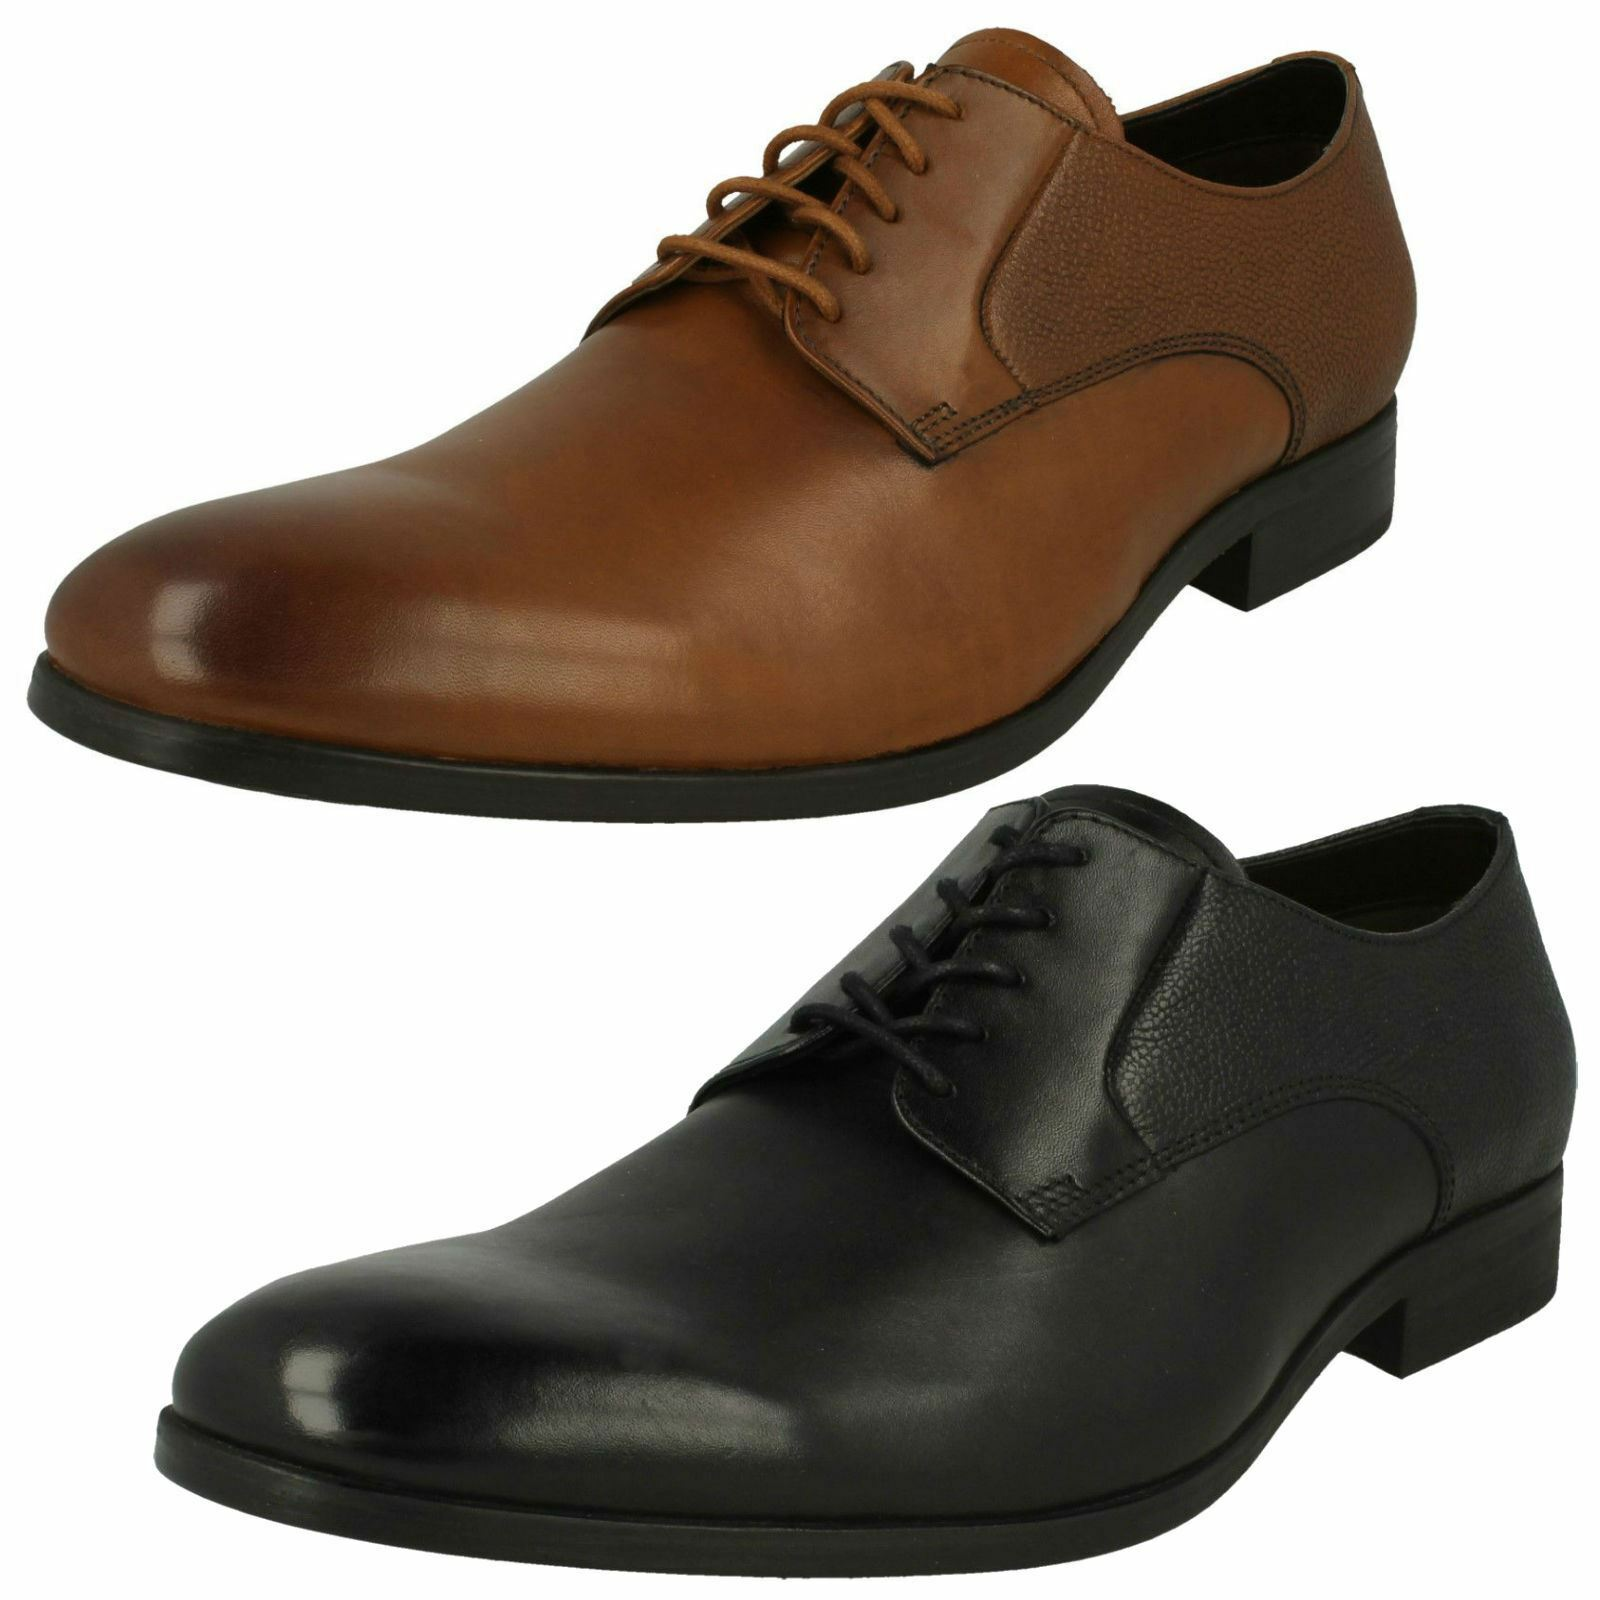 'Mens Clarks' Formal Lace Up schuhe - Gilmore Lace